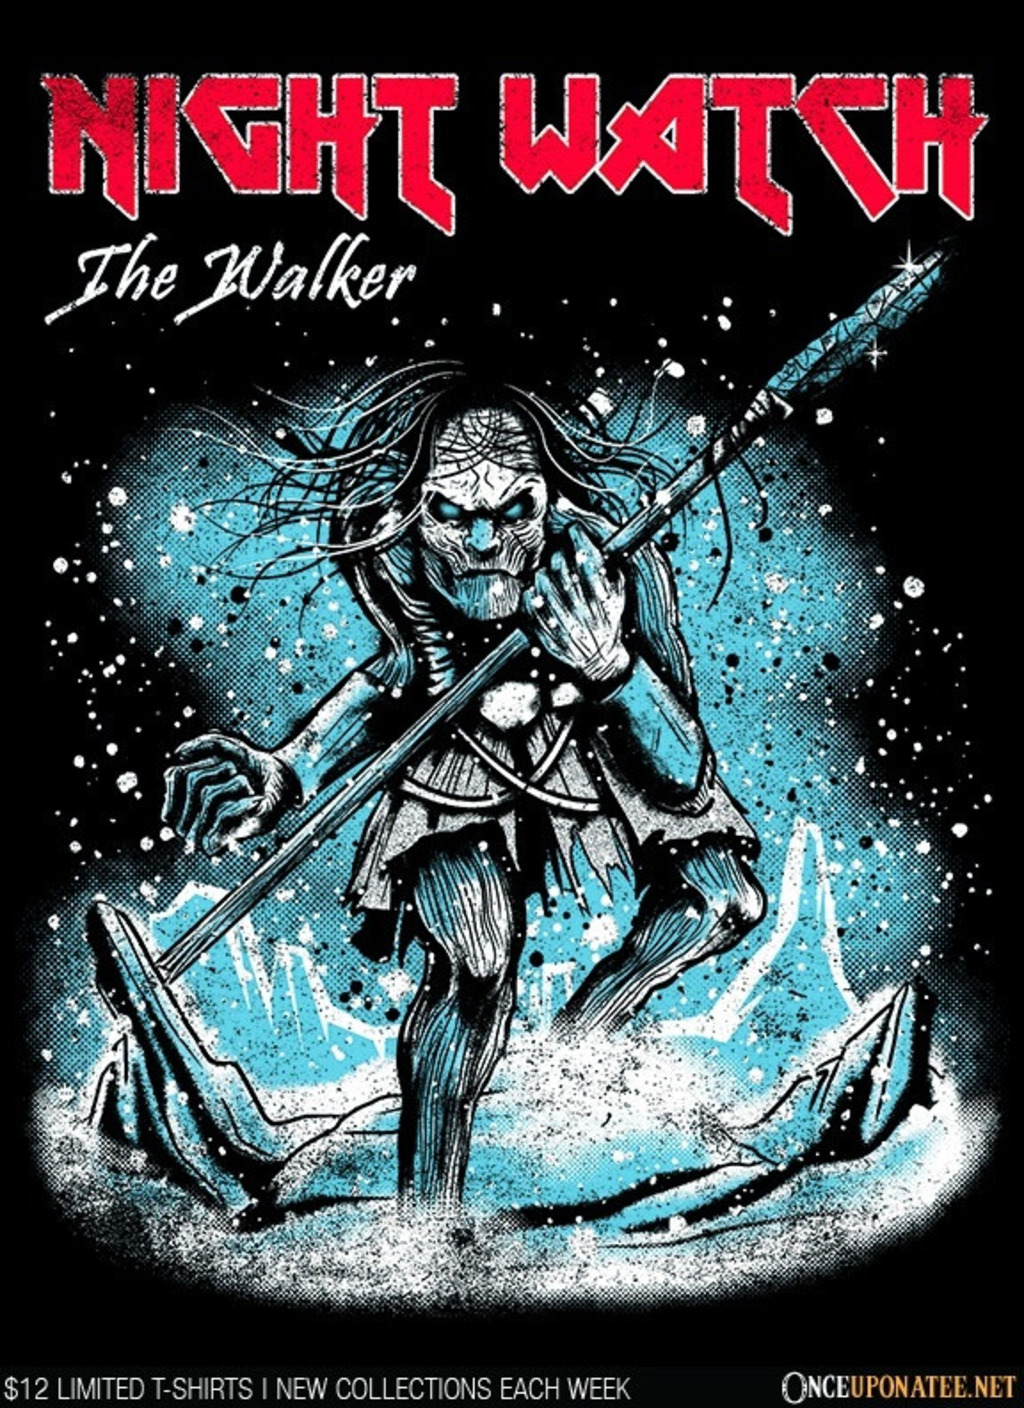 Once Upon a Tee: The Walker